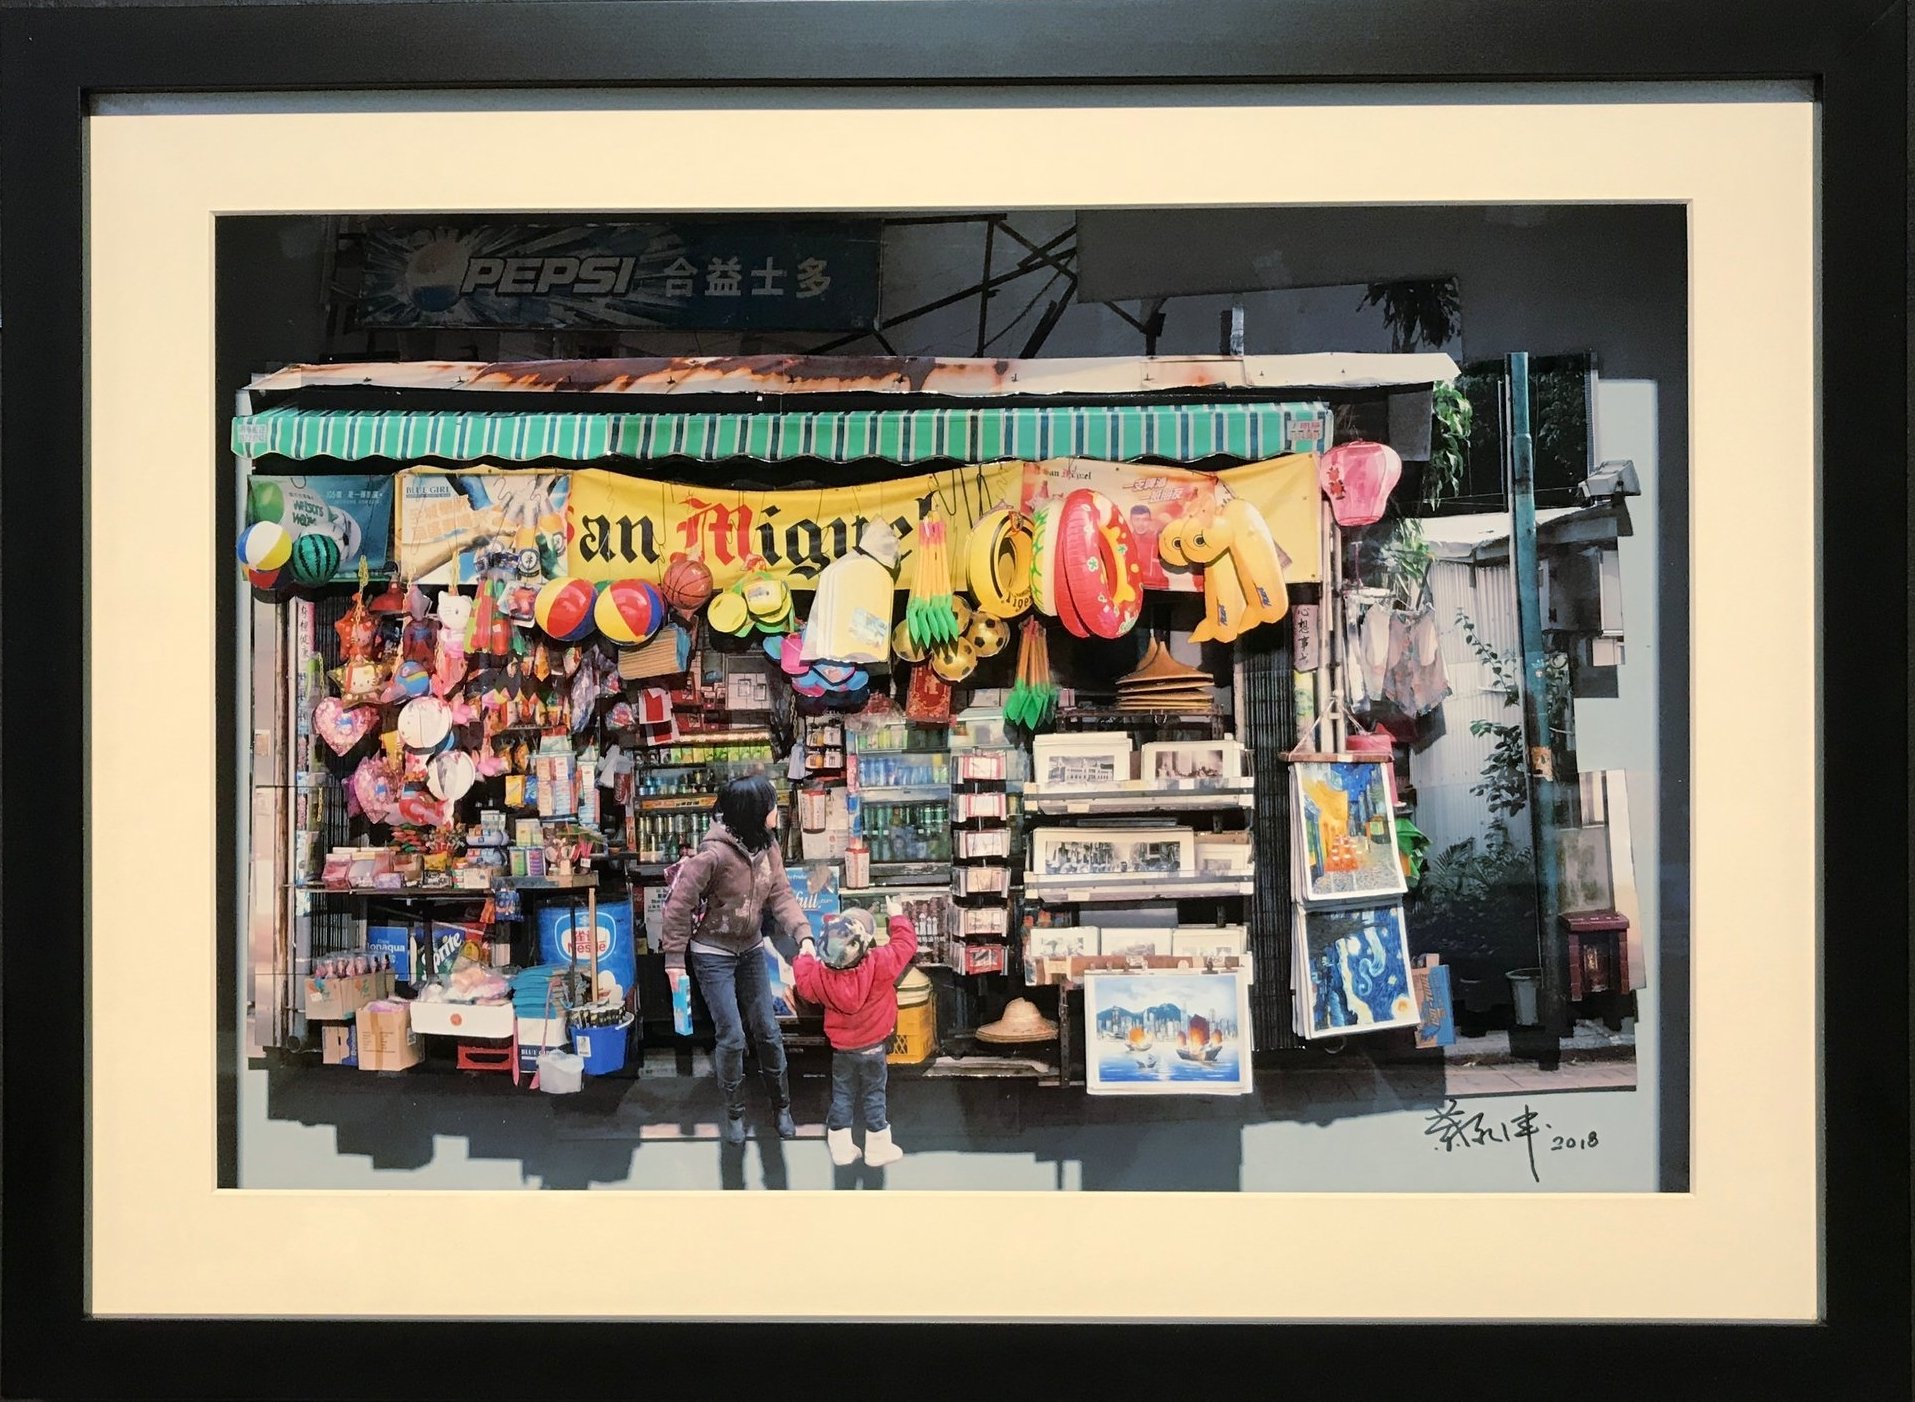 葉家偉 Alexis Ip, Hop Yick Store (Stanley), Hong Kong 2018, mixed media & collage, framed to 58 x 44 cm, open edition,  HK$ 12,500 inlcuding frame .